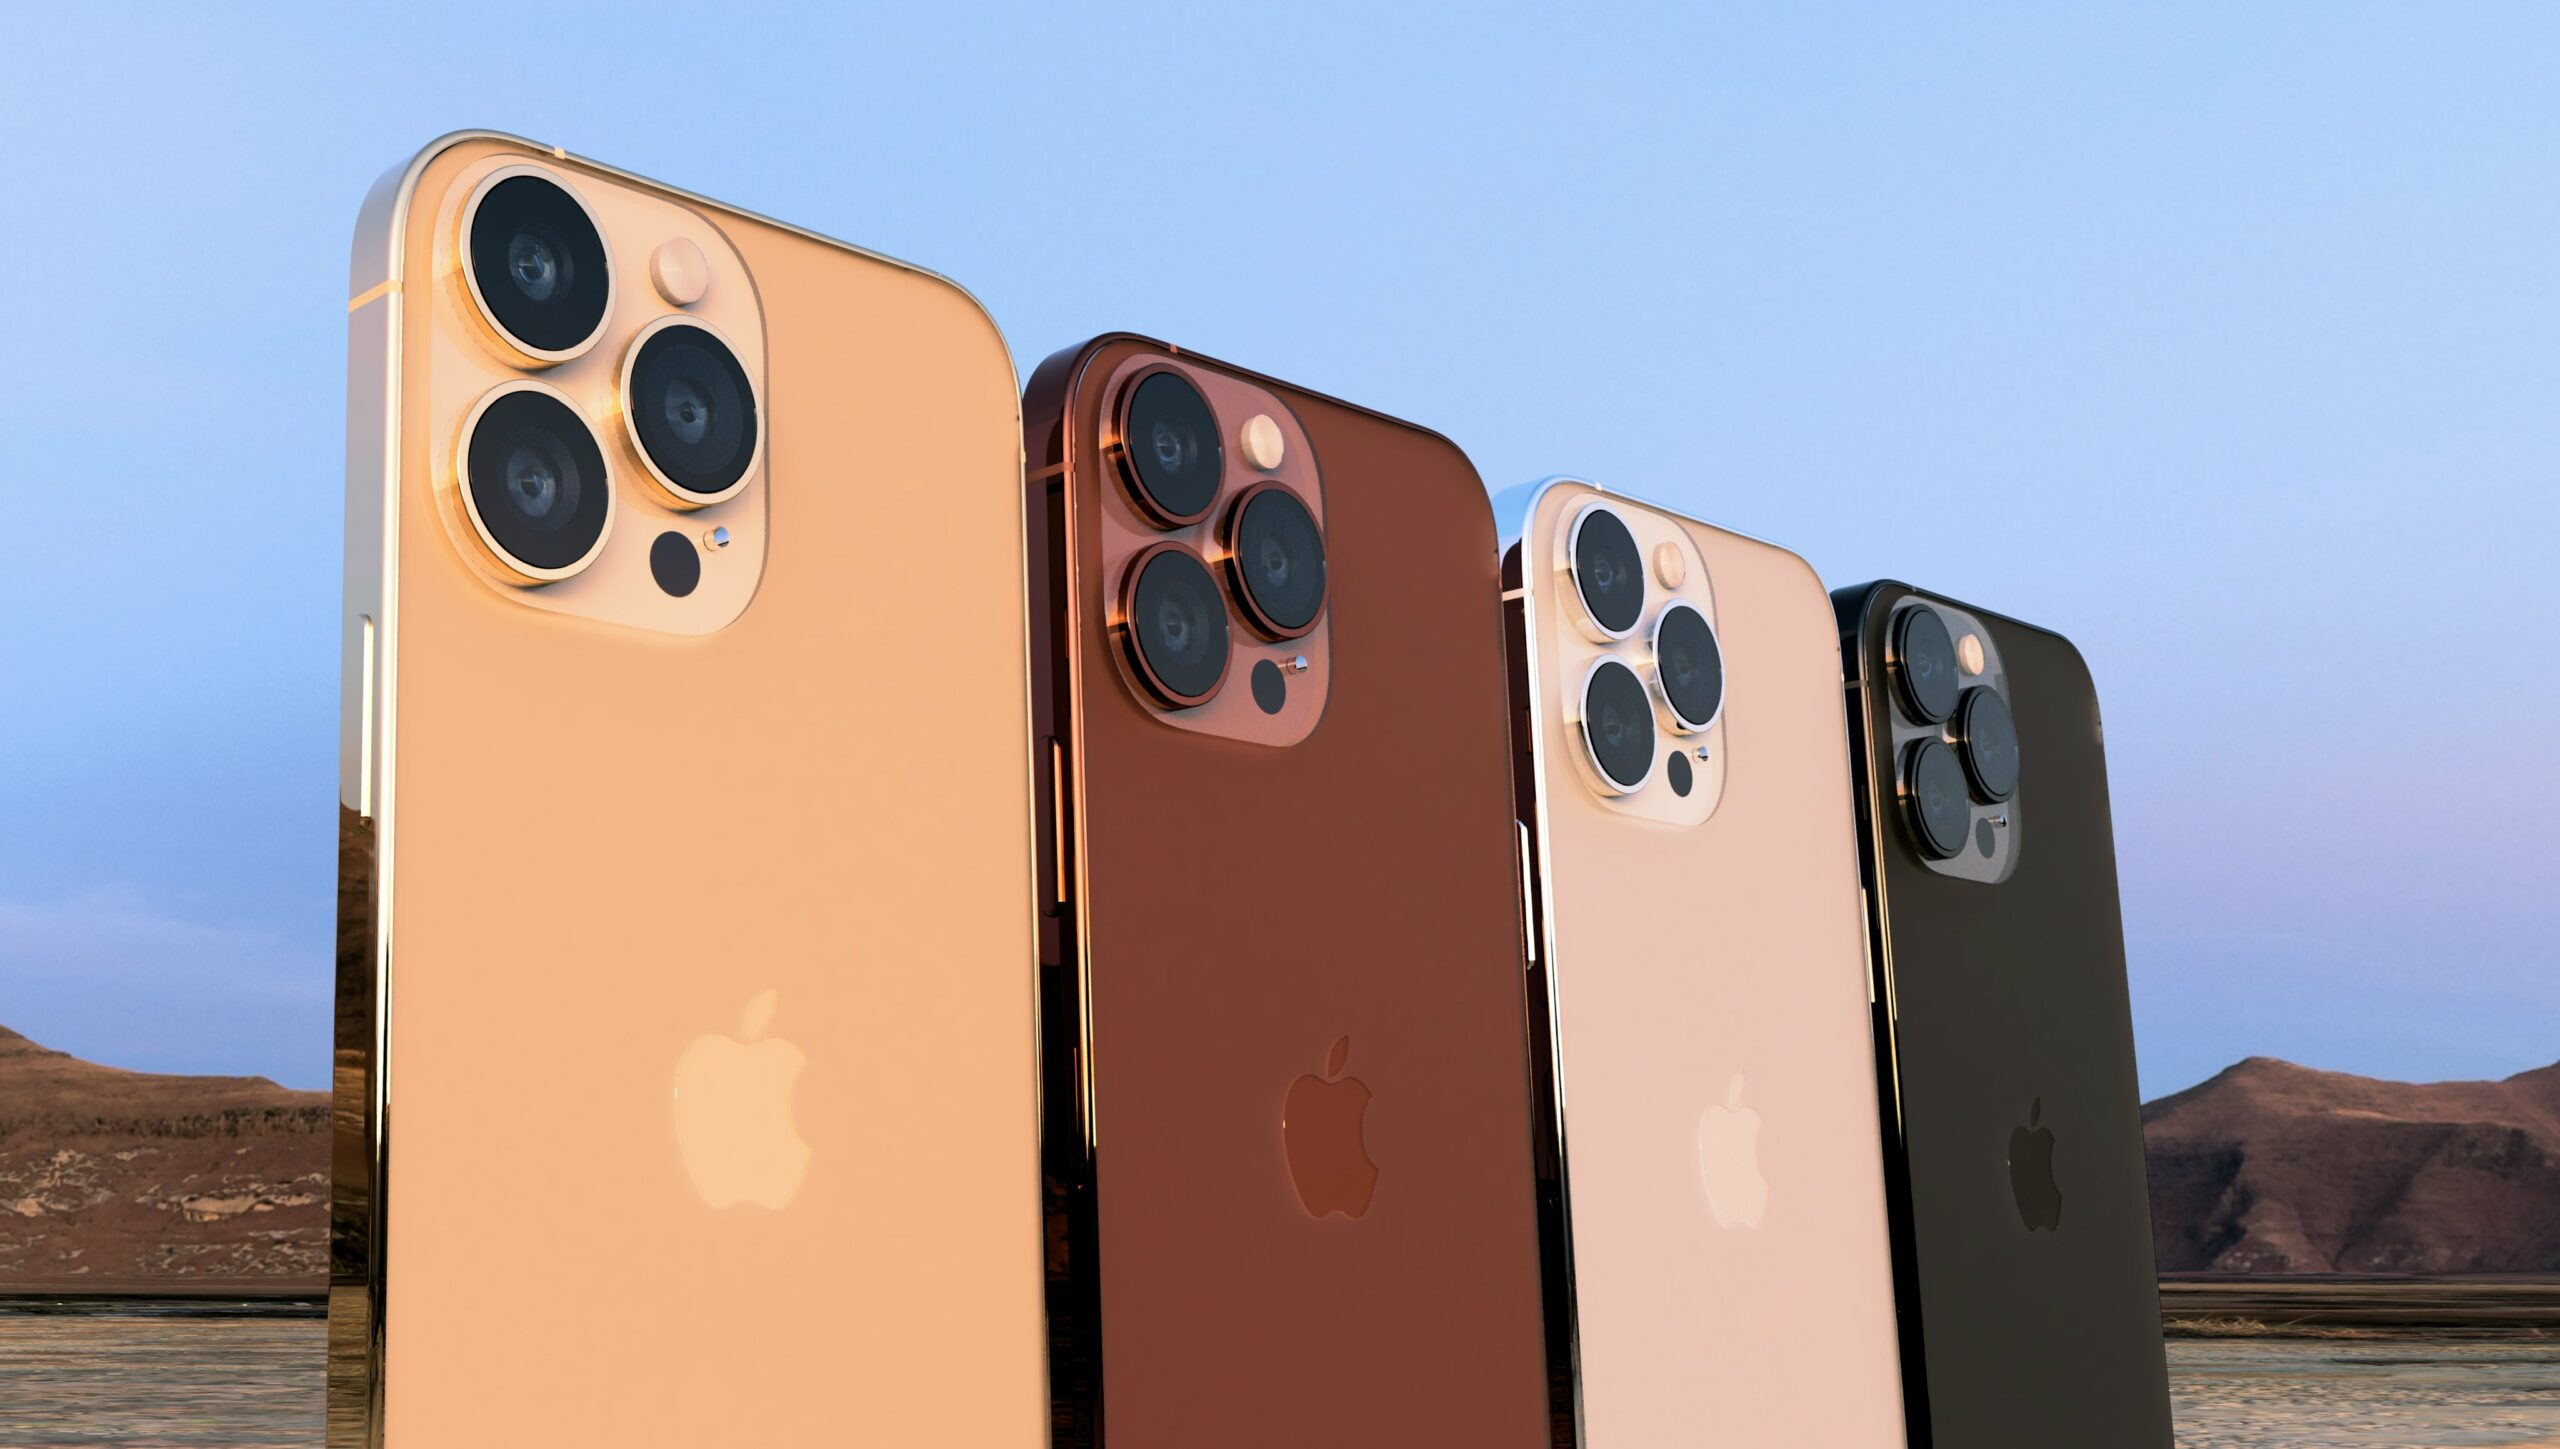 Apple iPhone 13 – Details you should know